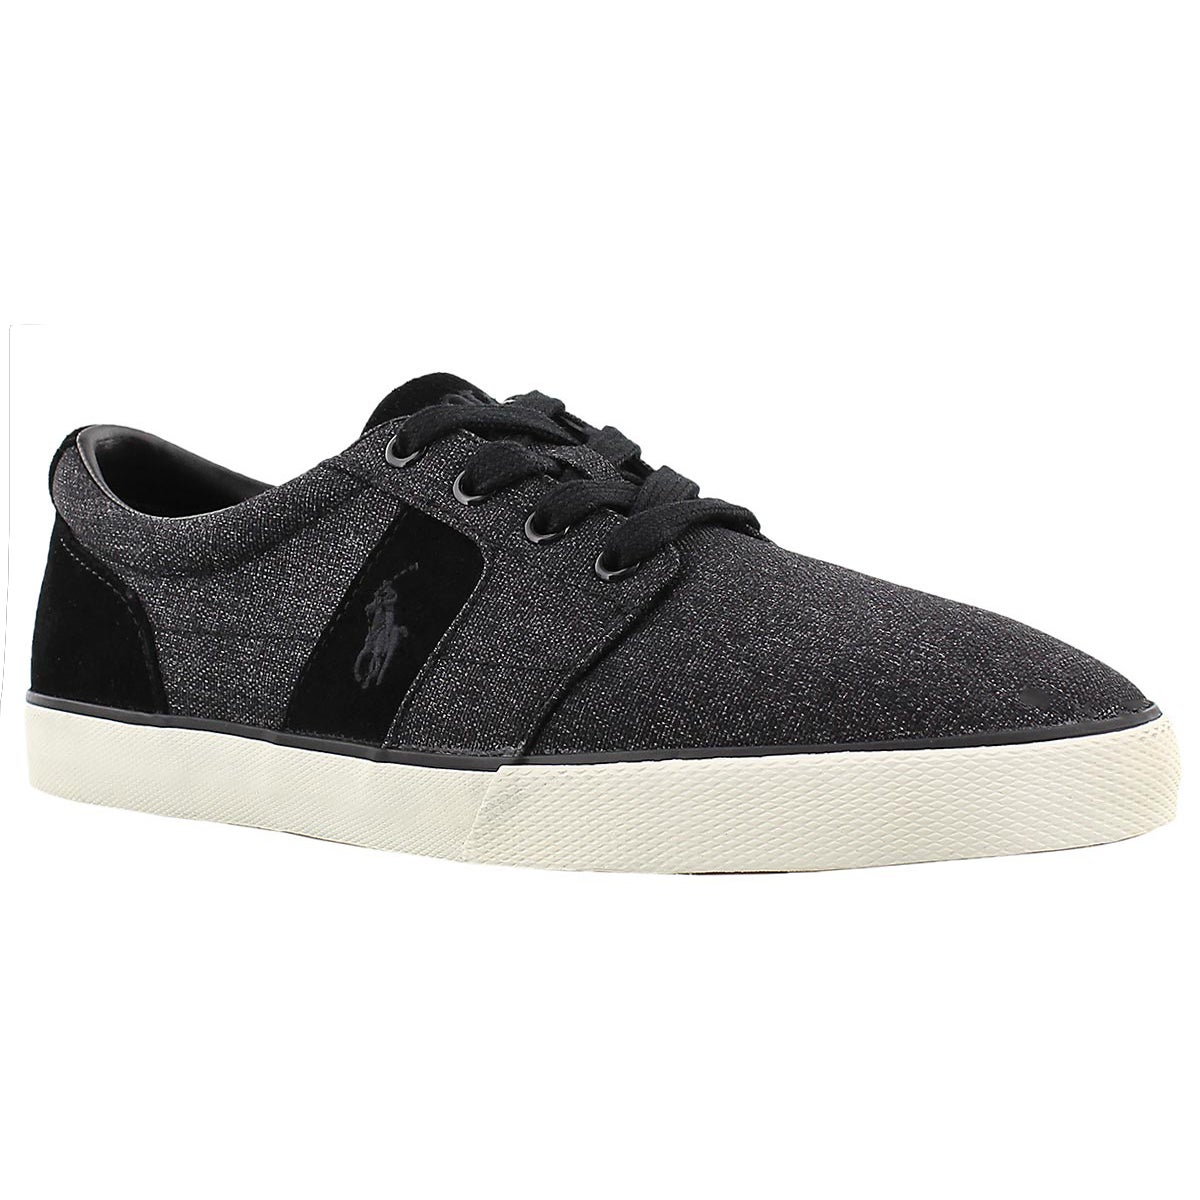 Men's HALMORE black suede/nylon sneakers